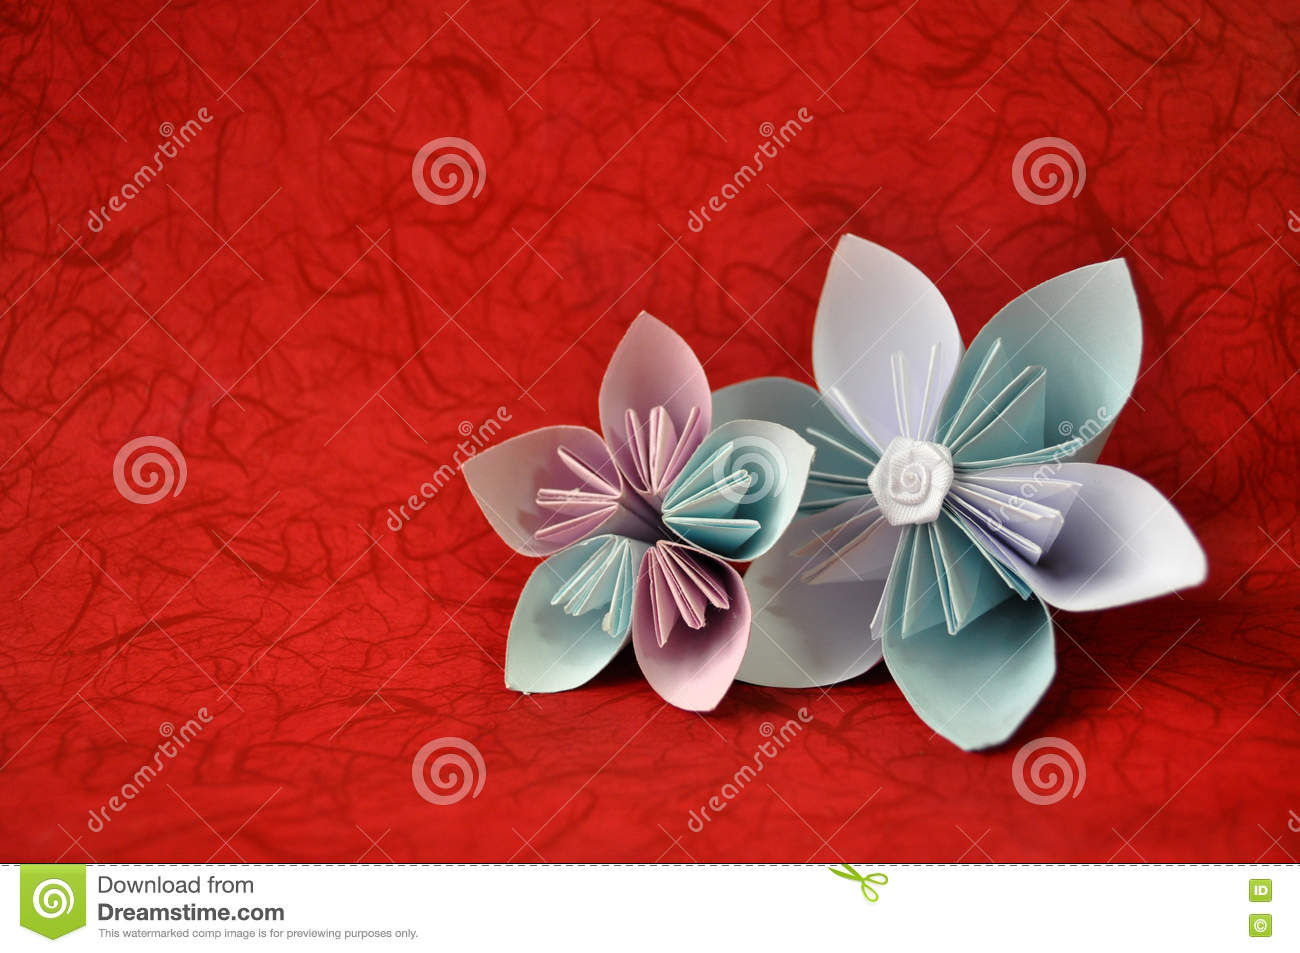 Beautiful Origami Flowers On Red Background Origami Flowers